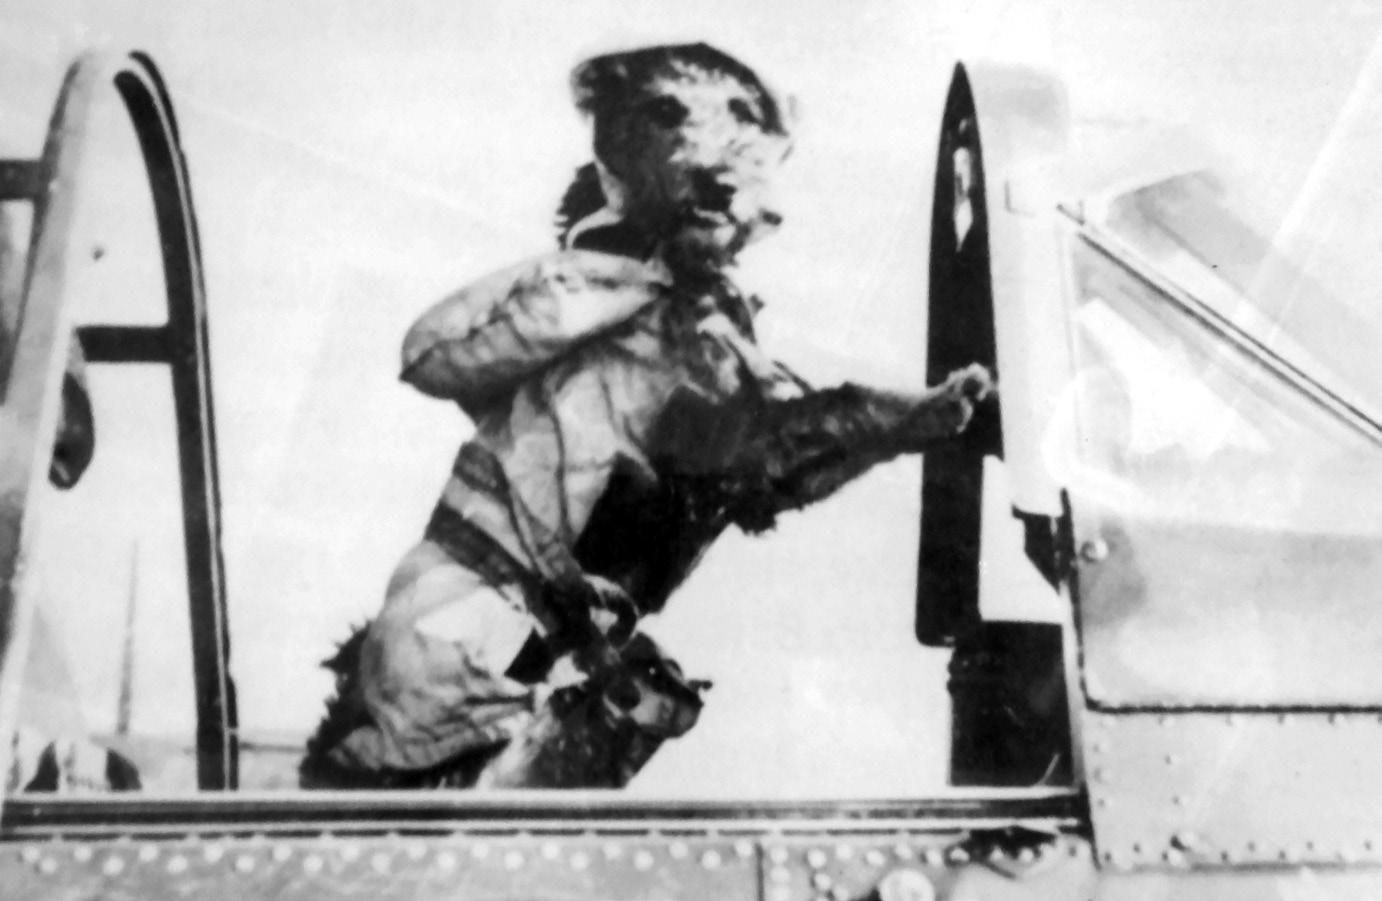 "Scrappy, the USS Yorktown's mascot, in the cockpit of one of the Yorktown's aircraft. Not long after departure in 1943, Captain Joseph ""Jocko"" Clark found a small gray dog that some of the pilots had smuggled onto the ship. The dog was dressed in a life jacket and was barking on the Flight Deck. Although the dog's name was Scrappy, the pilots told the captain, ""We call him Jock."" Apparently the quick thinking worked, and the captain allowed the dog to stay. (Courtesy of Patriot's Point)"